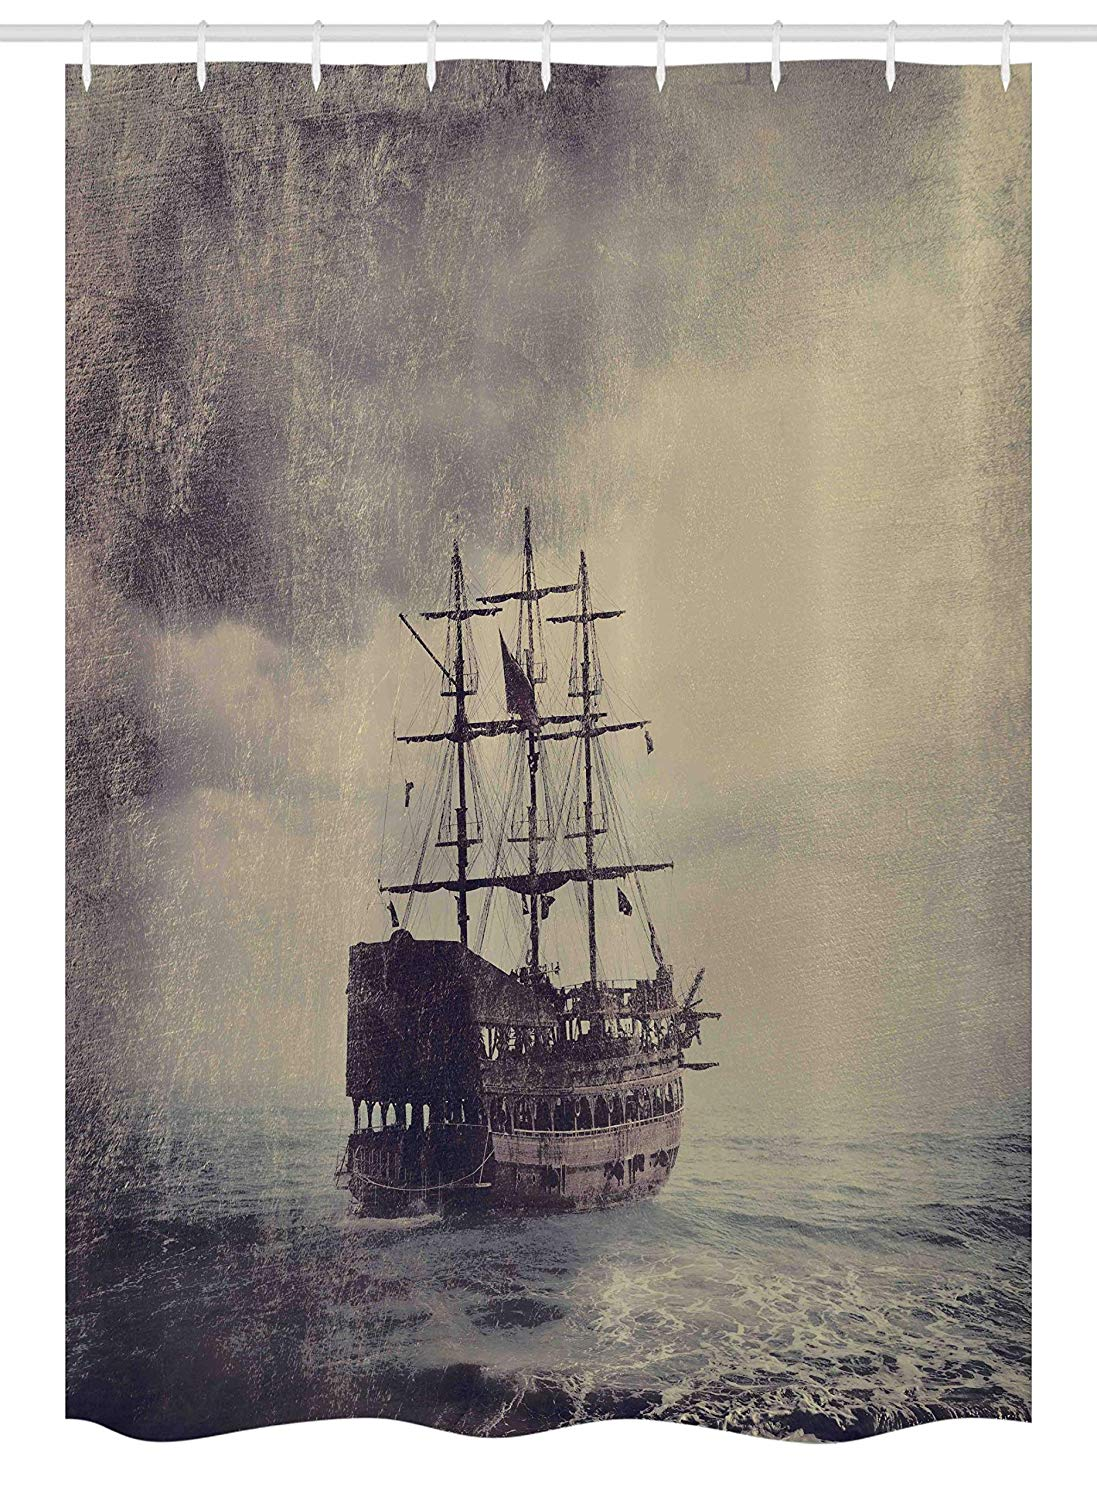 "Ambesonne Nautical Stall Shower Curtain, Old Pirate Ship in The Sea Historical Cruise Retro Voyage Grunge Style Art, Fabric Bathroom Decor Set with Hooks, 54"" X 78"", Tan Plum"